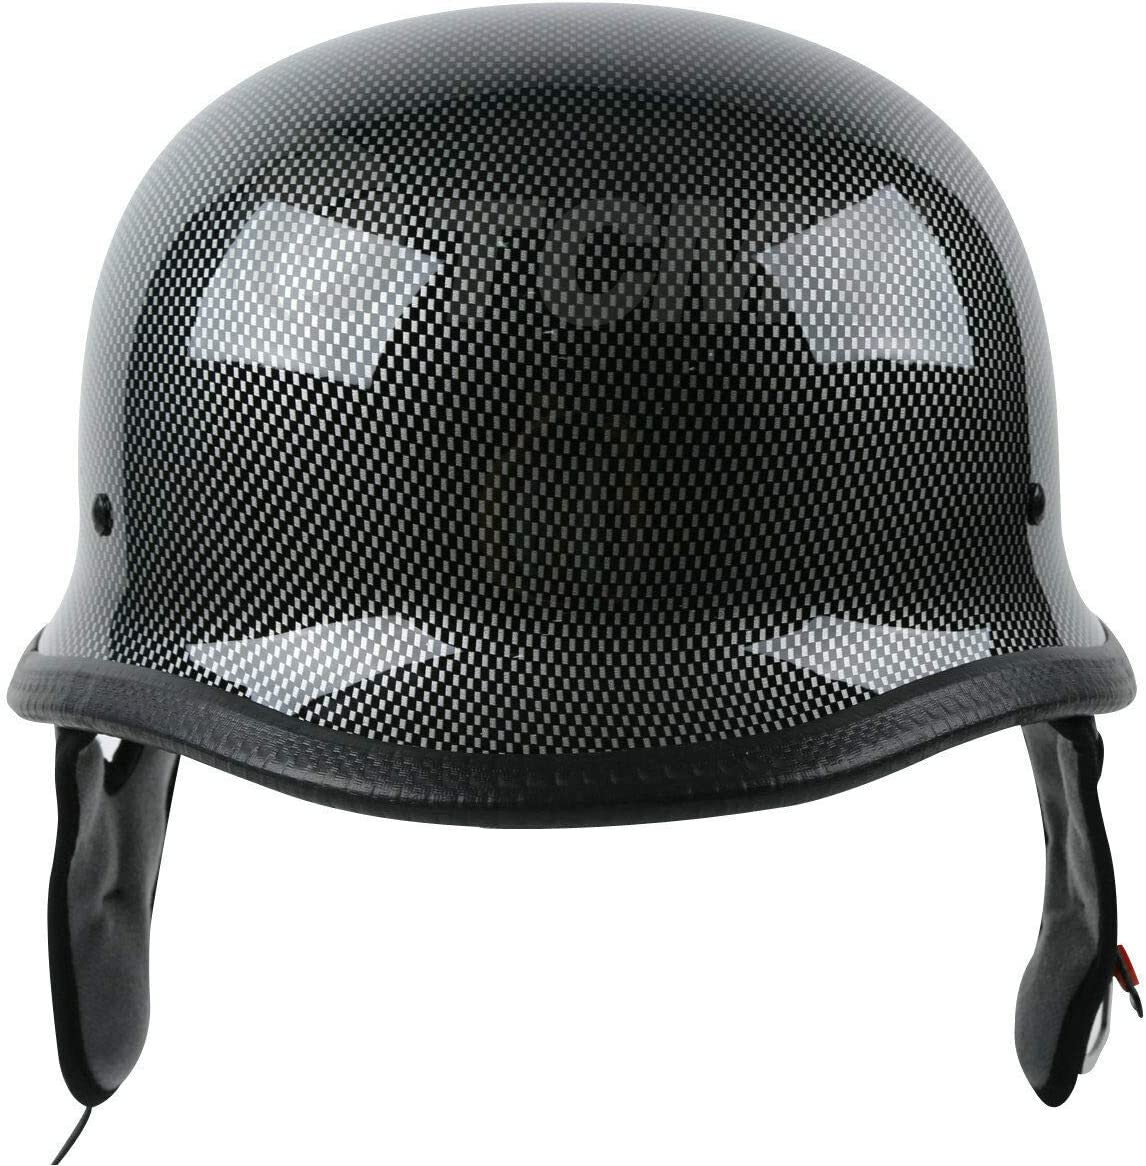 SLMOTO M Motorcycle Half Face German Helmet Head Protect Fiber DOT For Cruiser